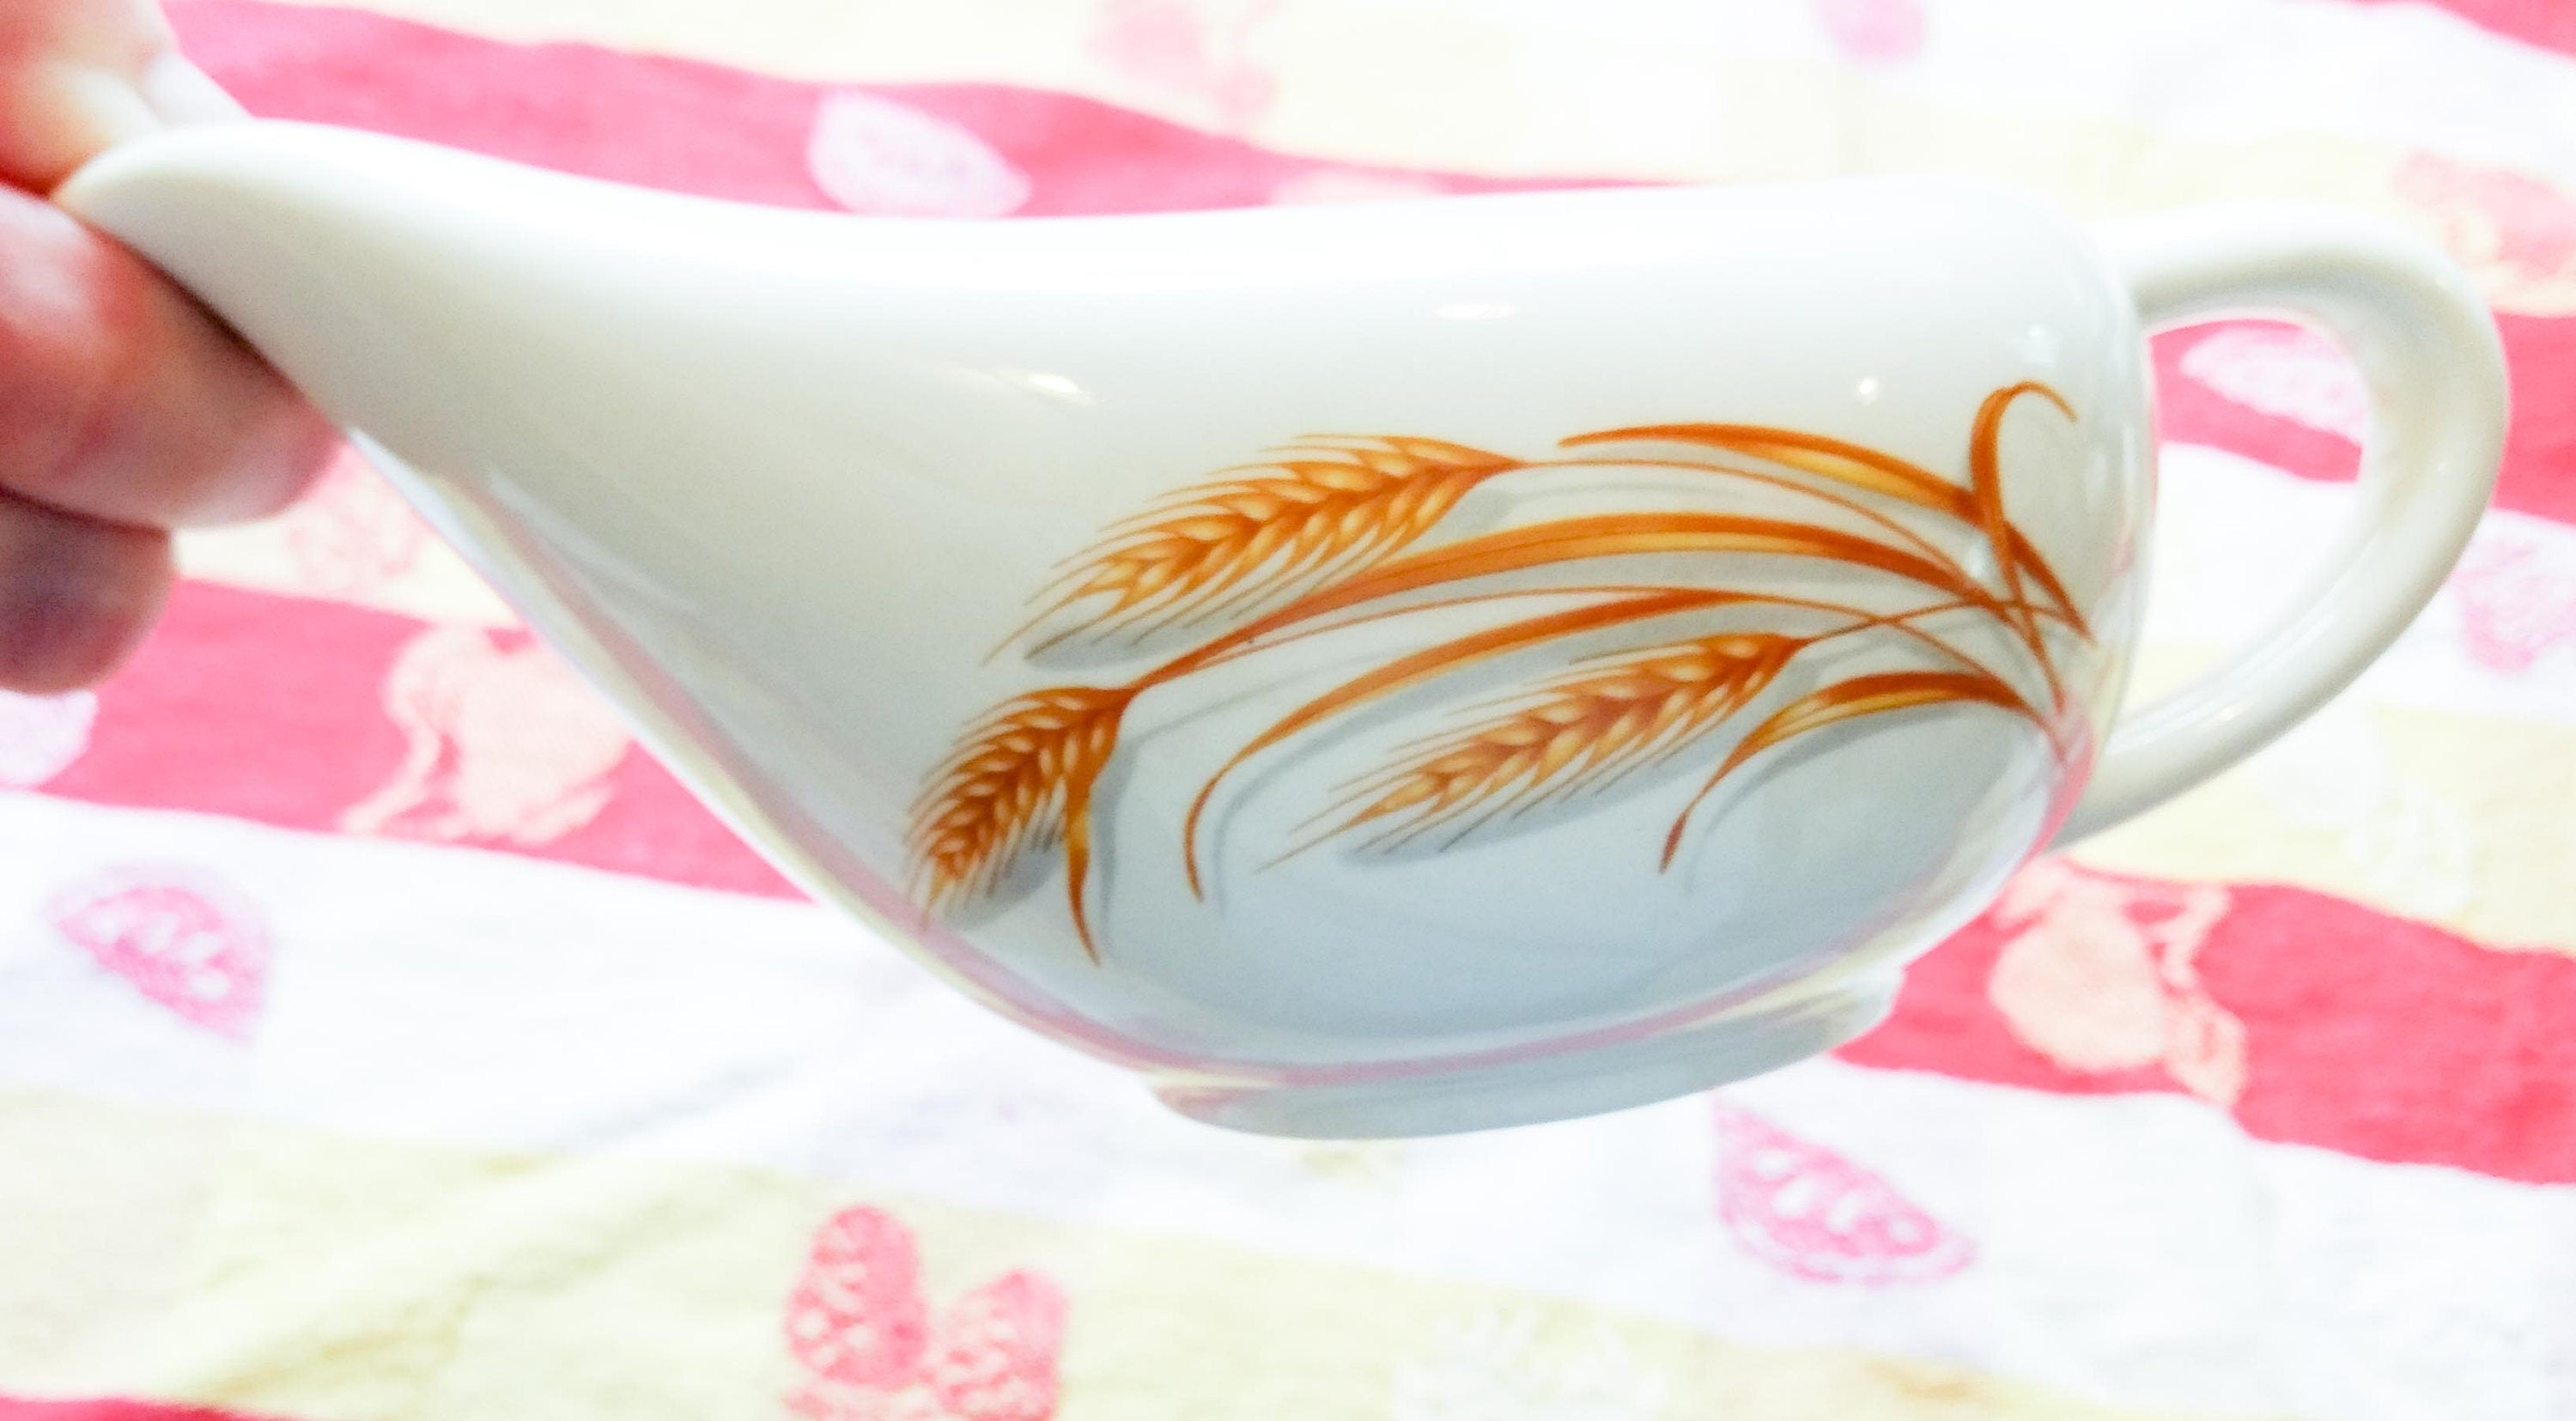 Discontinued Mid Century Modern MCM Homer Laughlin Golden Wheat Open Sauce Gravy Boat